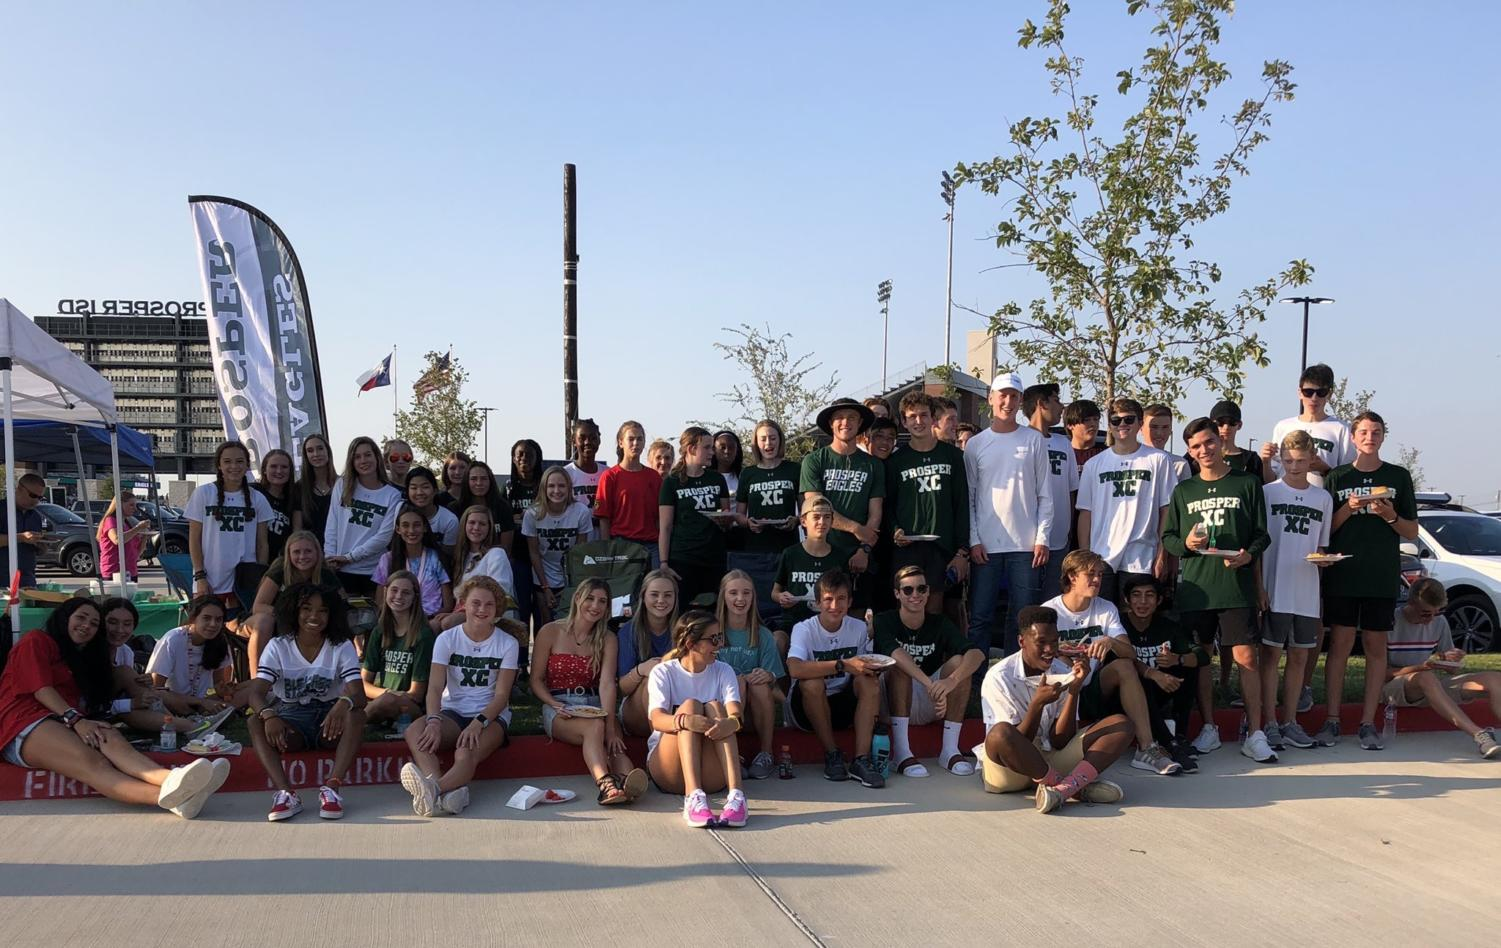 The boys and girls cross country teams sat together during a team dinner while tailgating prior to the football game against Timber Creek. Their season started in August and wraps up with a final meet in November. The runners practice every morning at 6 a.m.